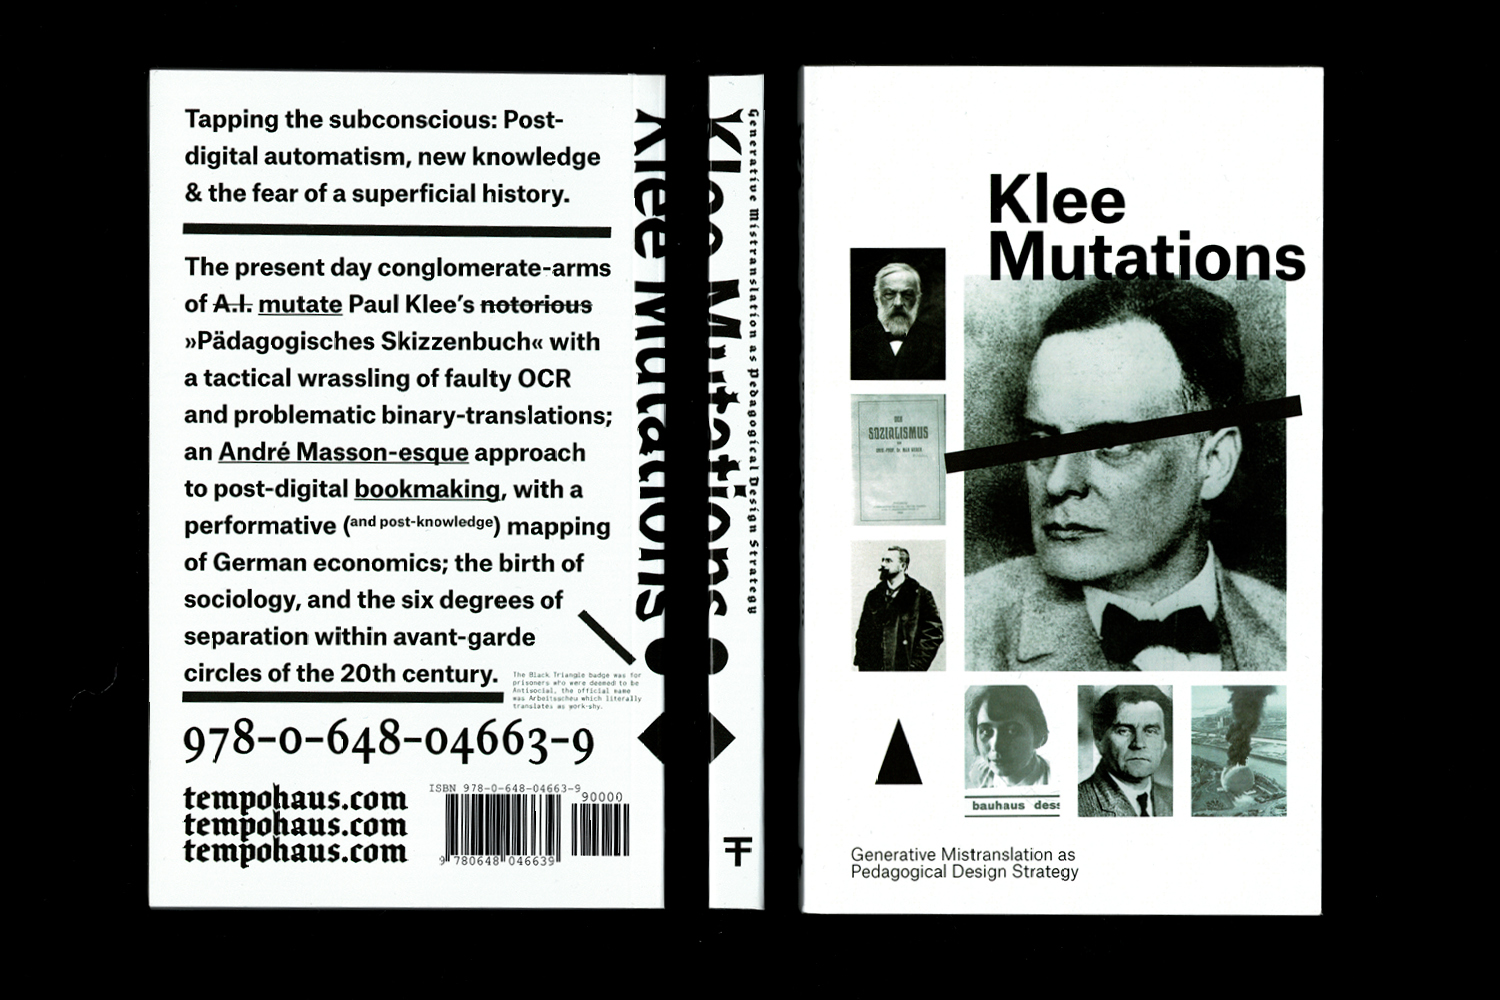 Klee_Mutations_Cover_3_Spine.jpg